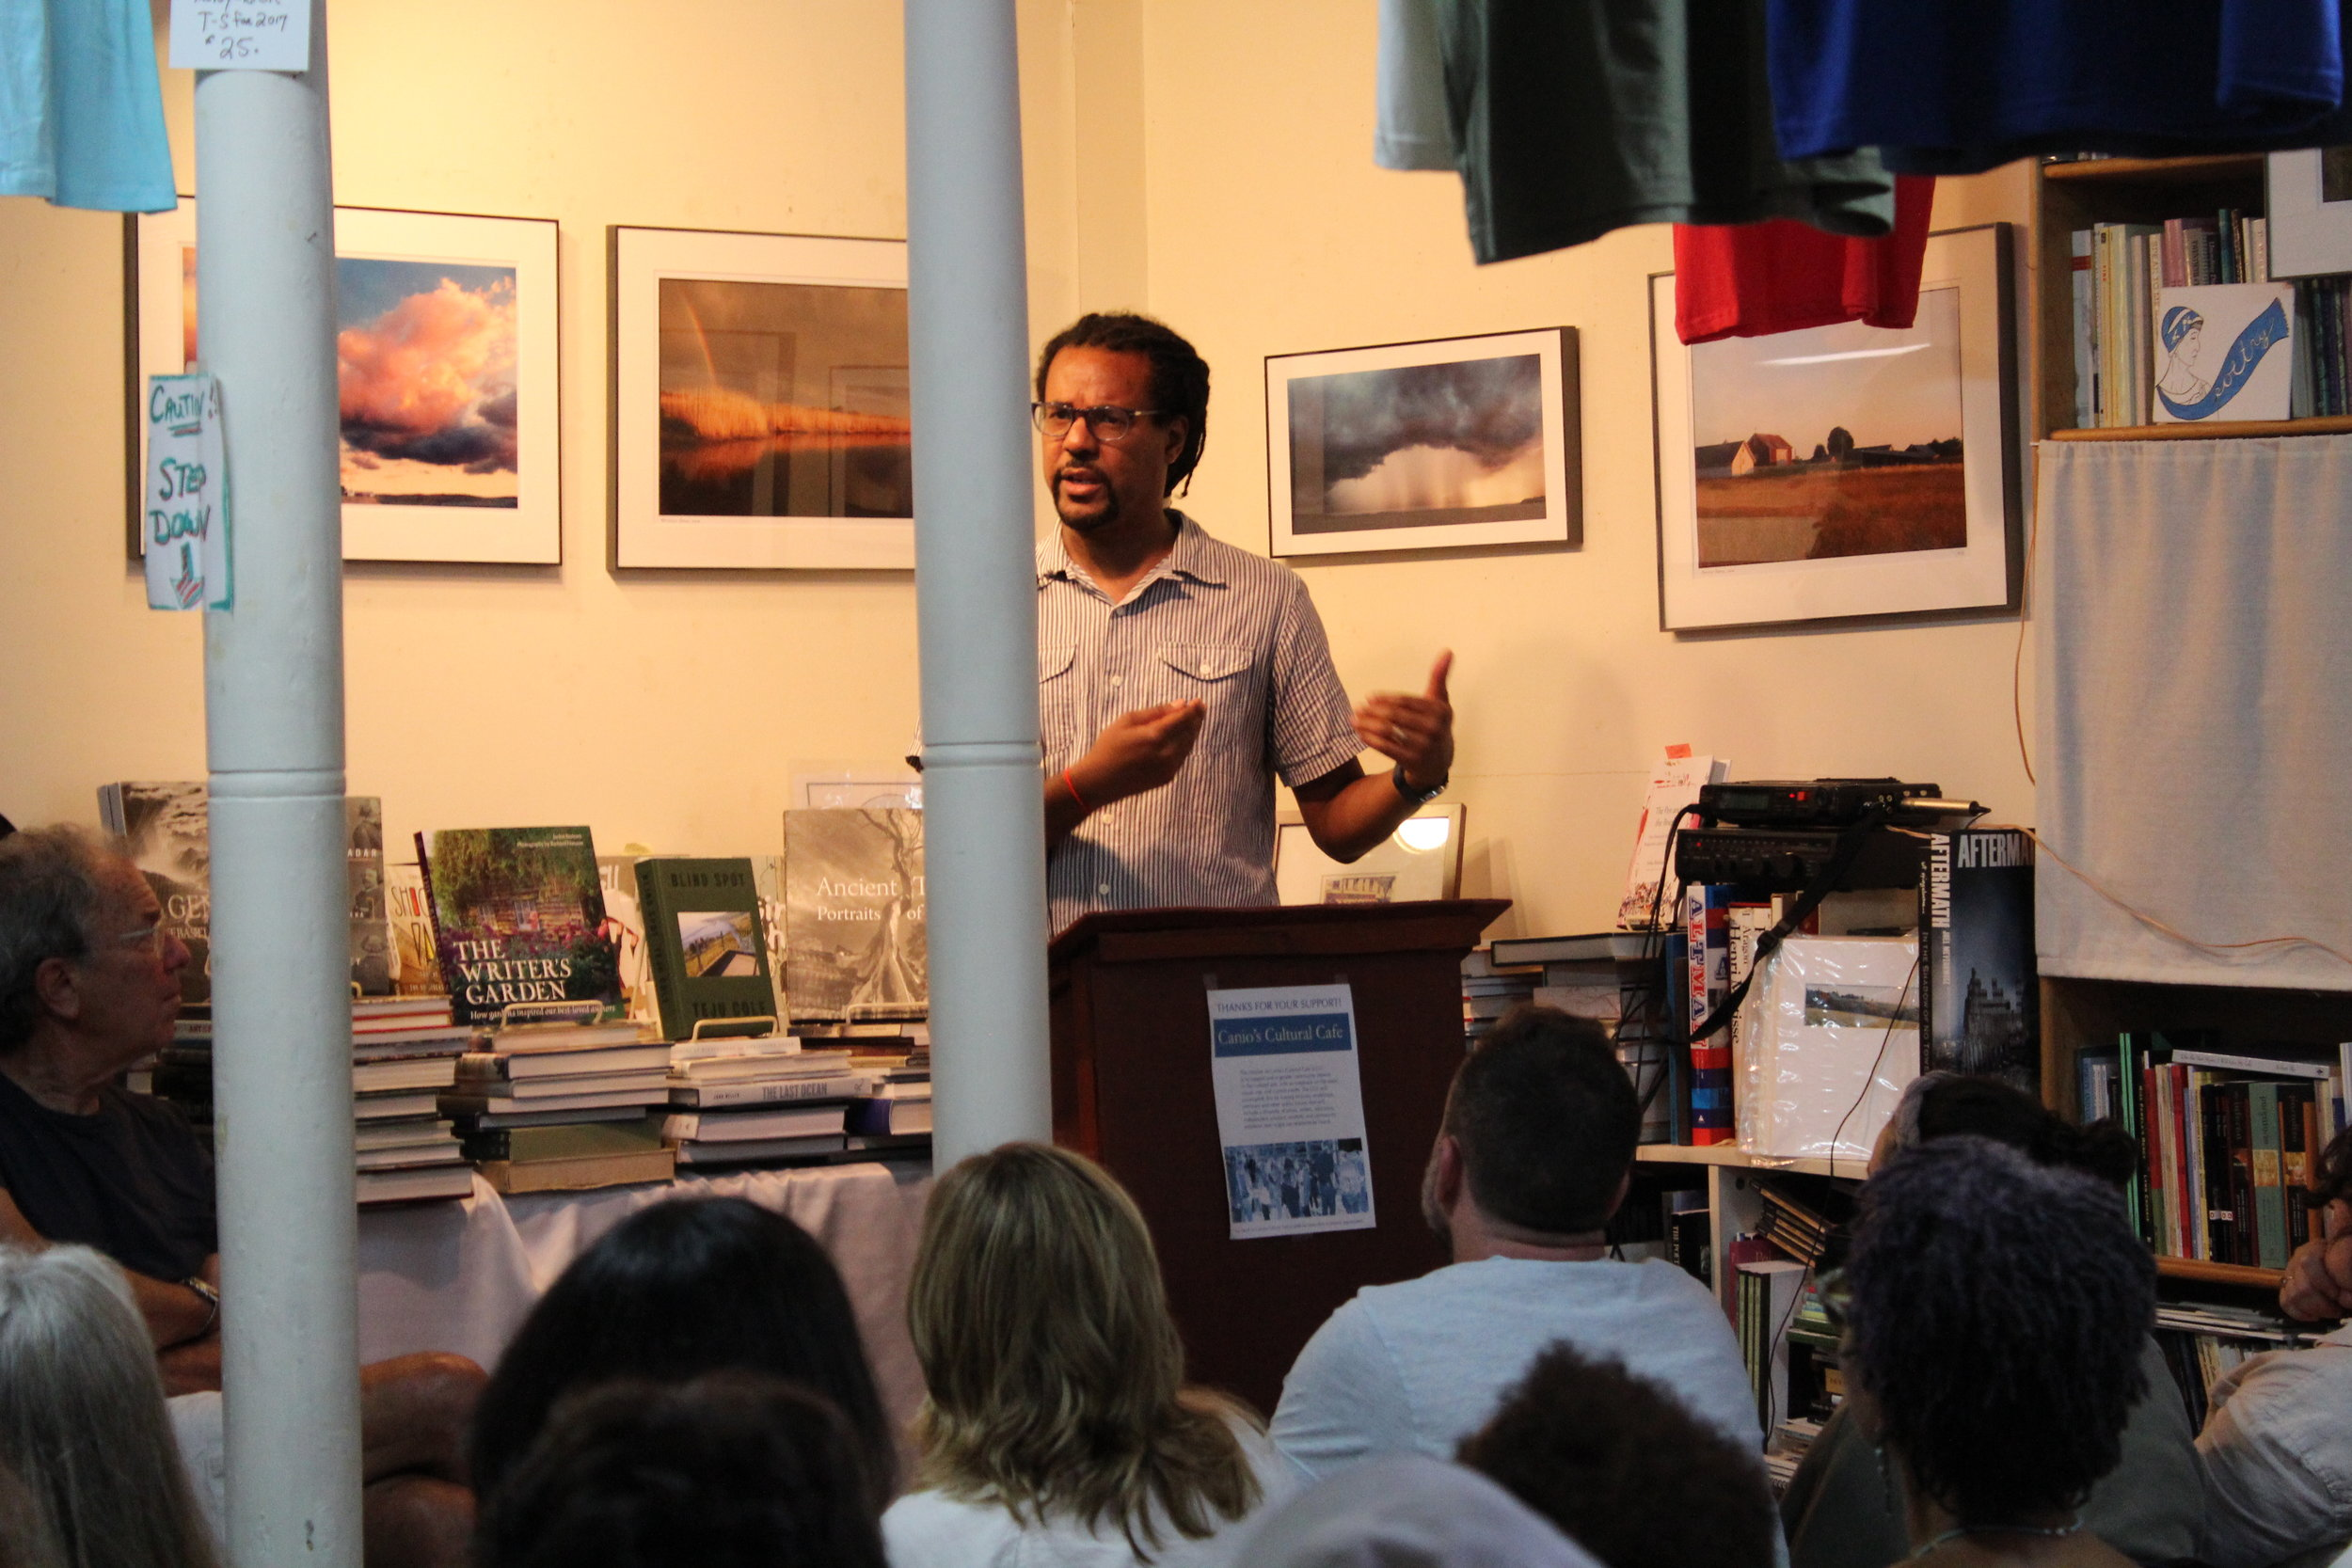 """Colson Whitehead Given Hometown Welcome - Esteemed author discusses his latest novel, """"The Underground Railroad."""" The Southampton Press, August 2017."""